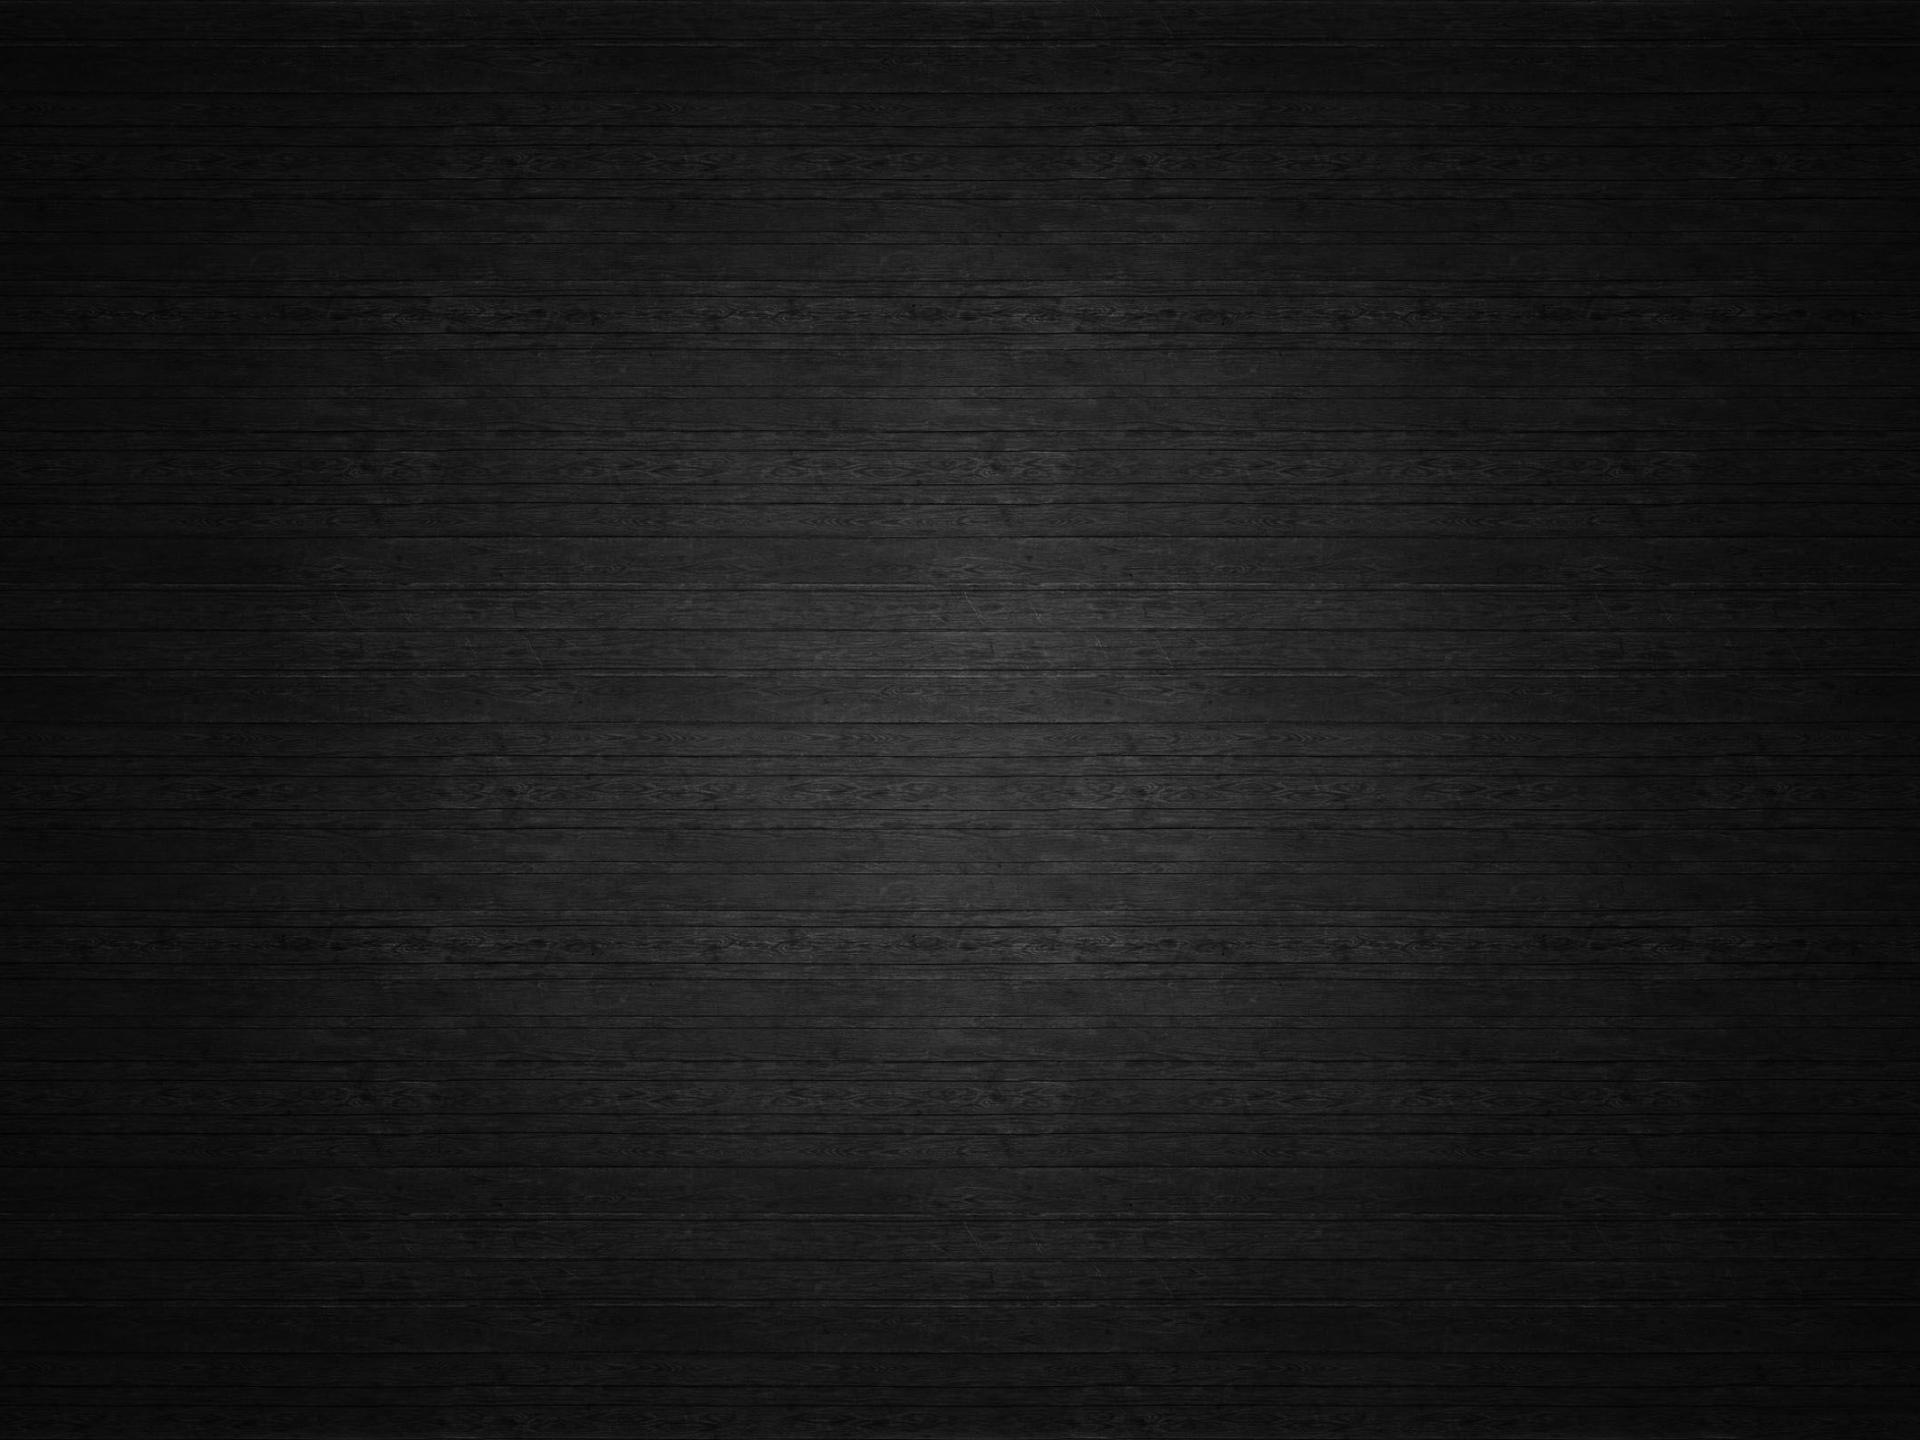 Abstract Black Background - WallpaperSafari